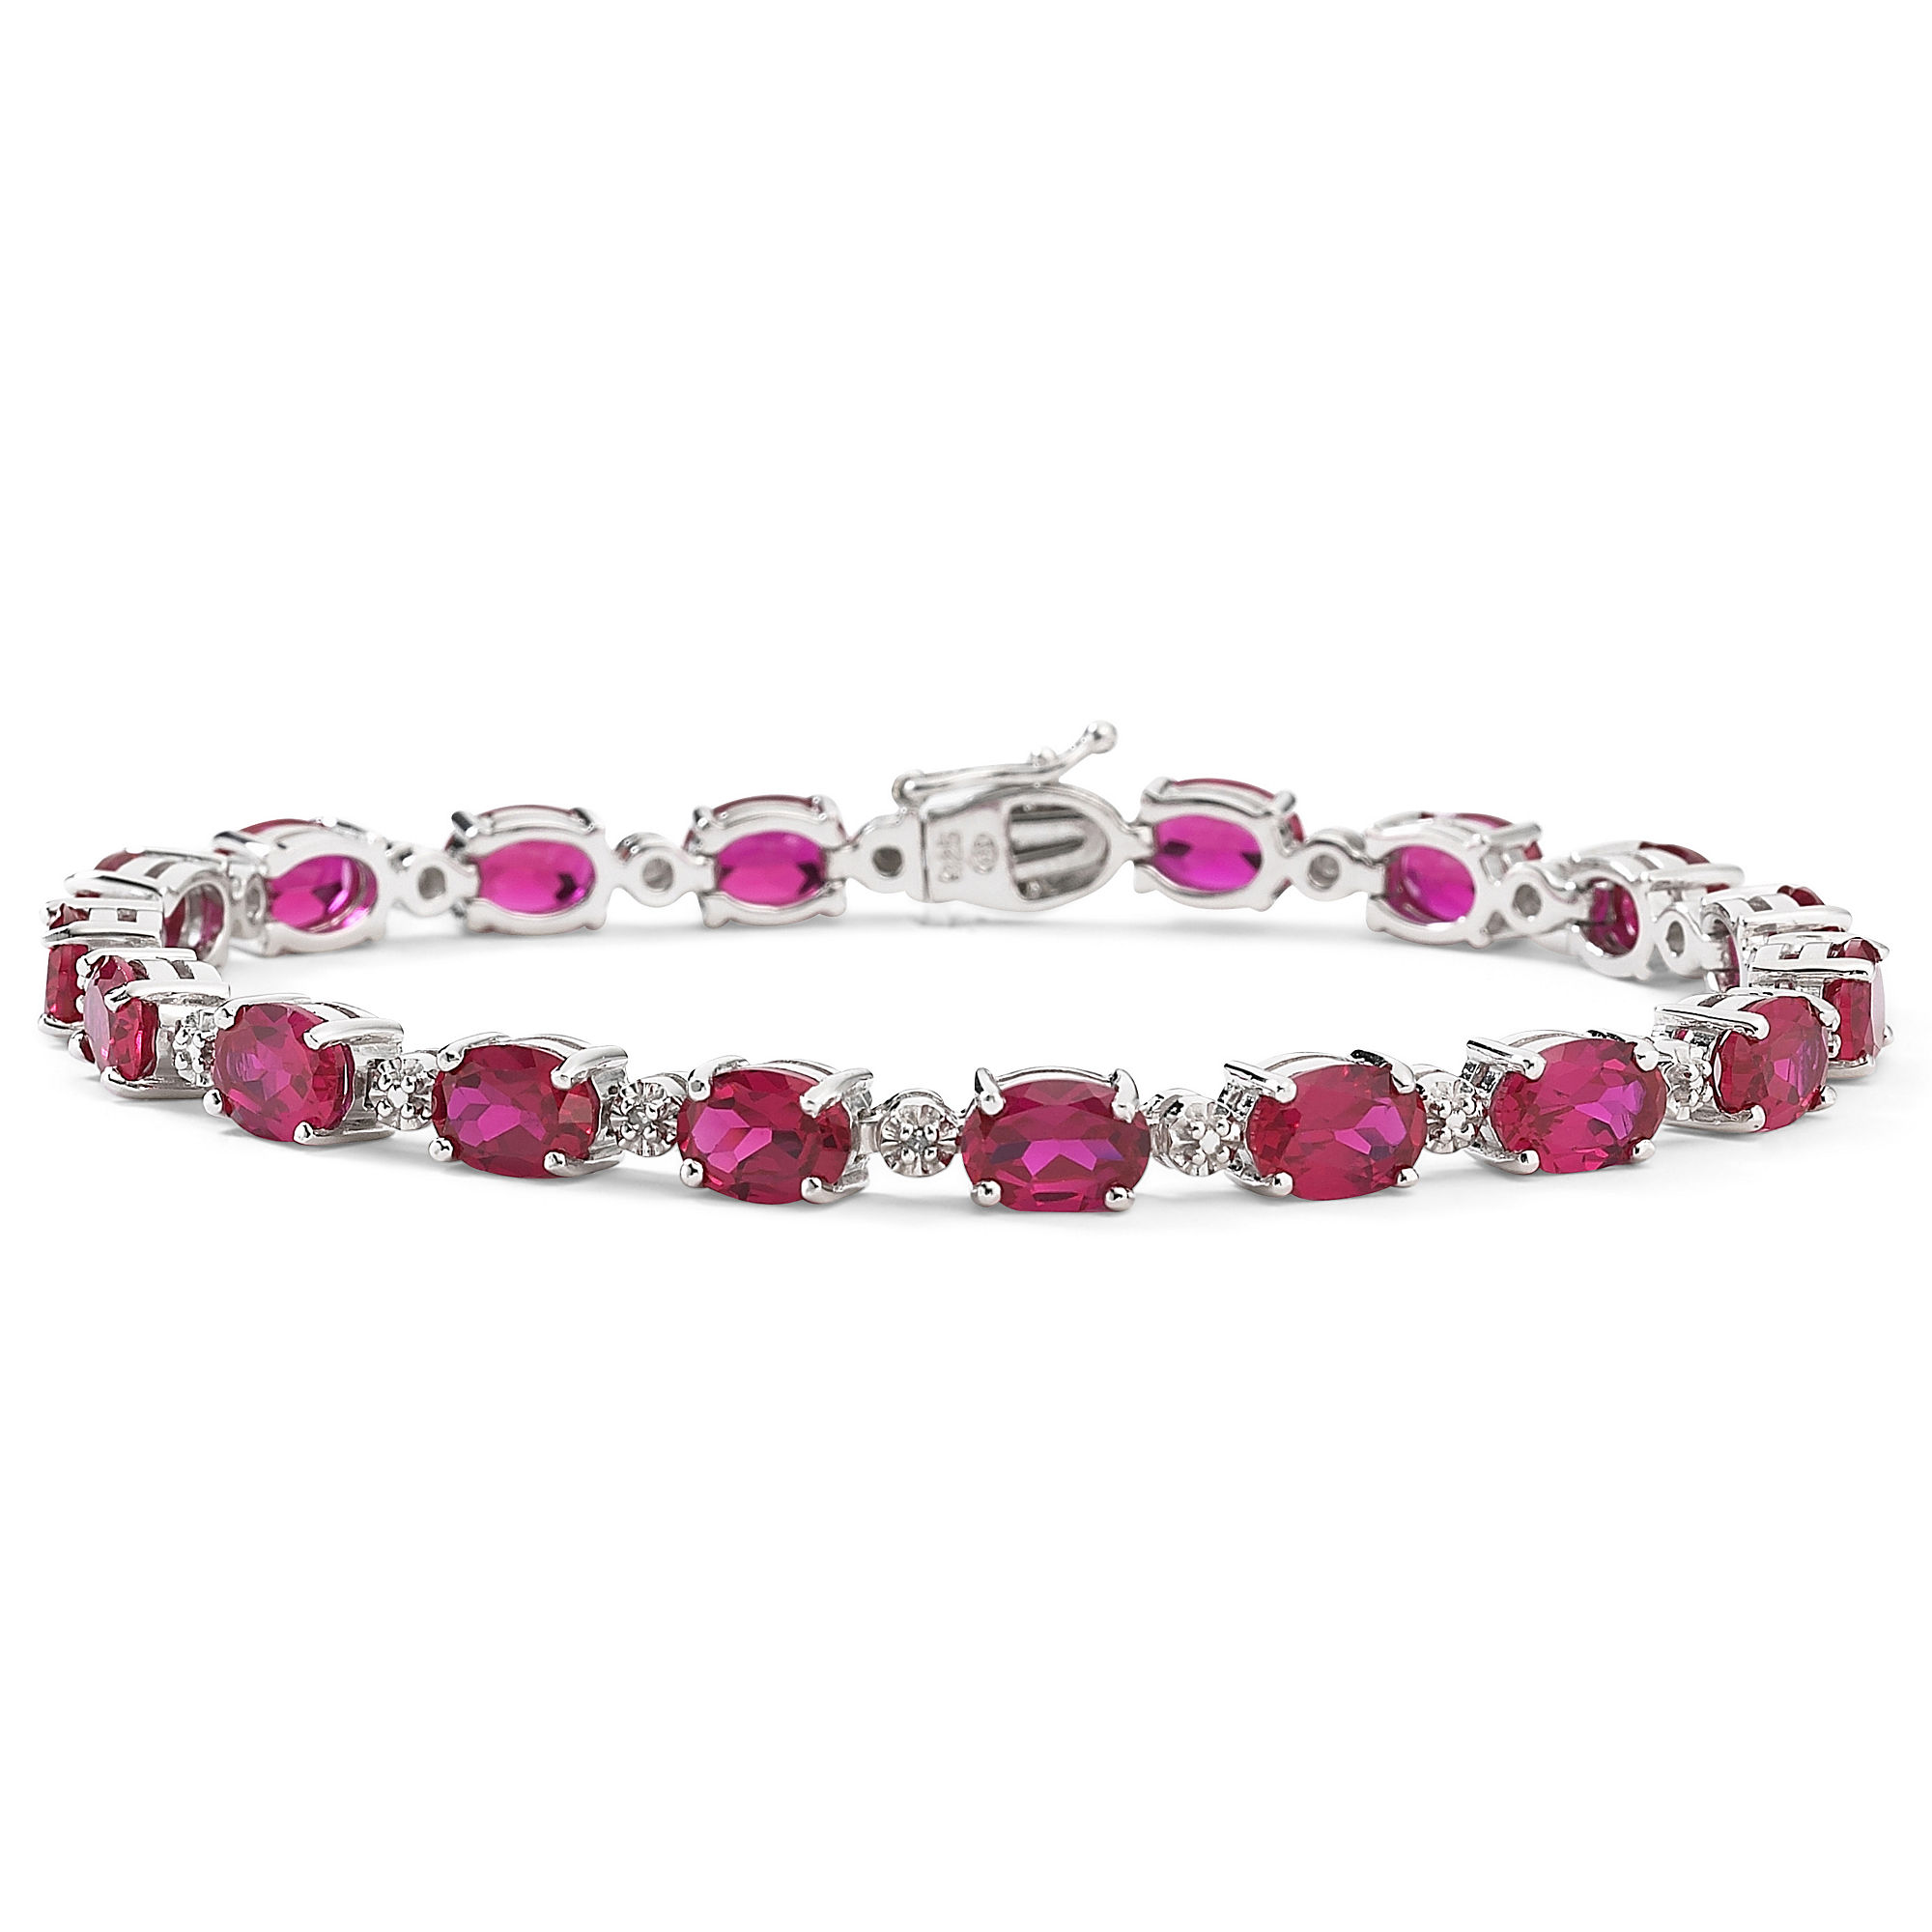 Lab-Created Ruby and Diamond-Accent Tennis Bracelet